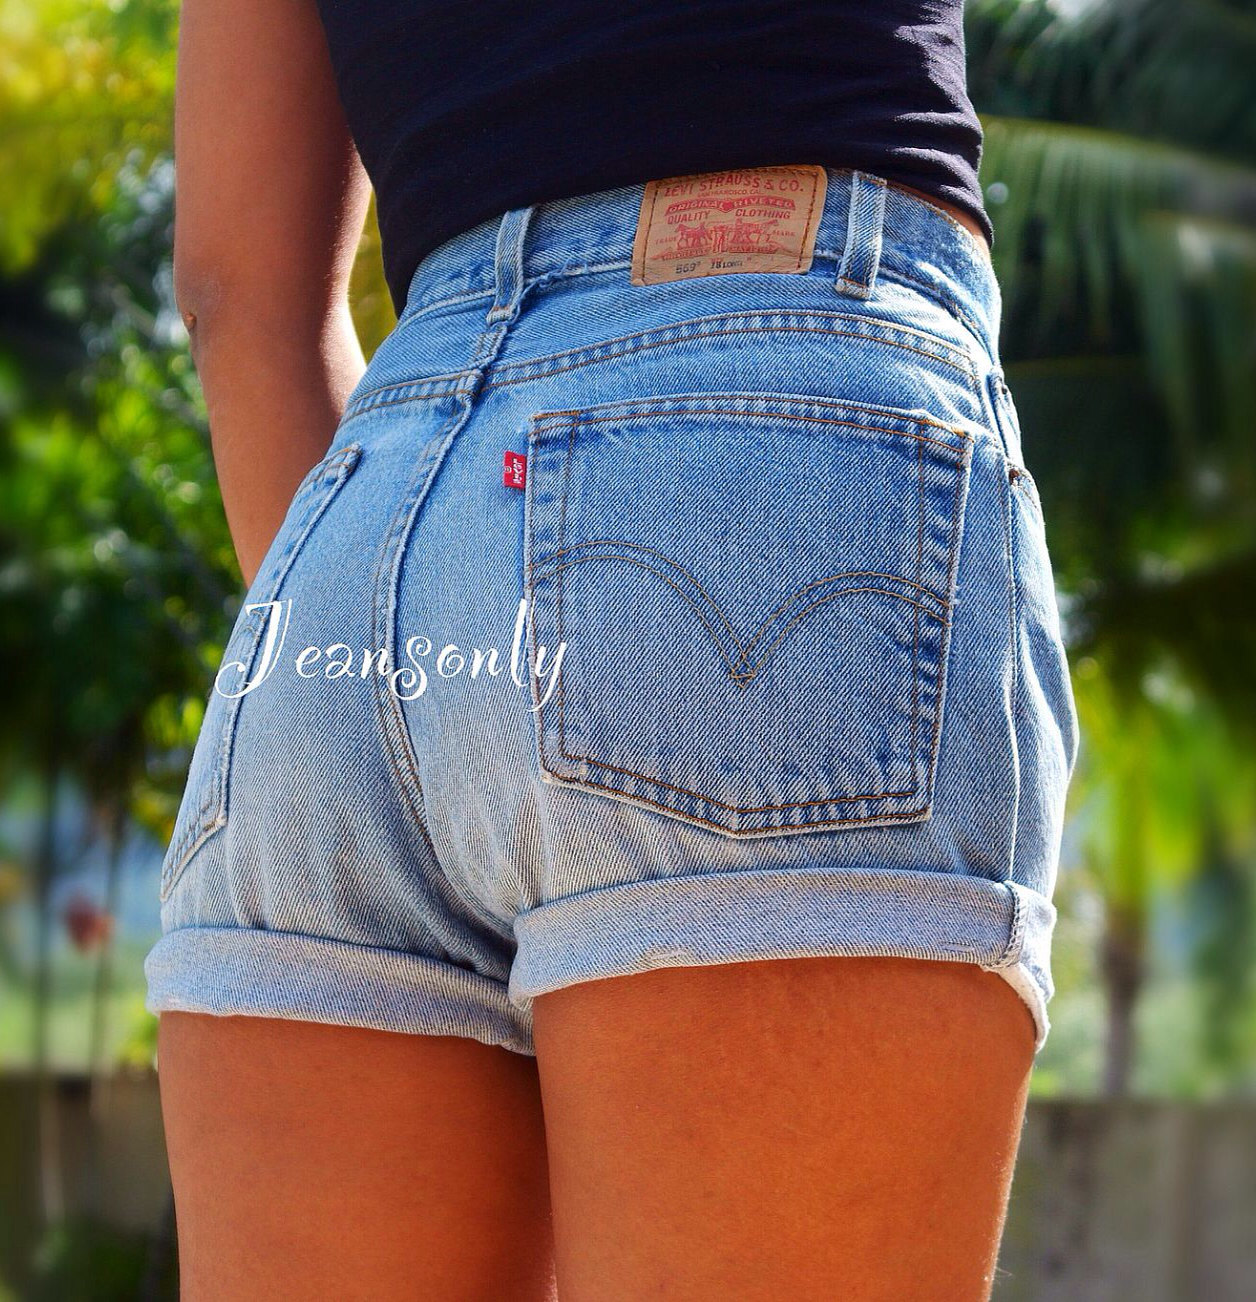 high waisted denim shorts Plus size jeans shorts by Jeansonly